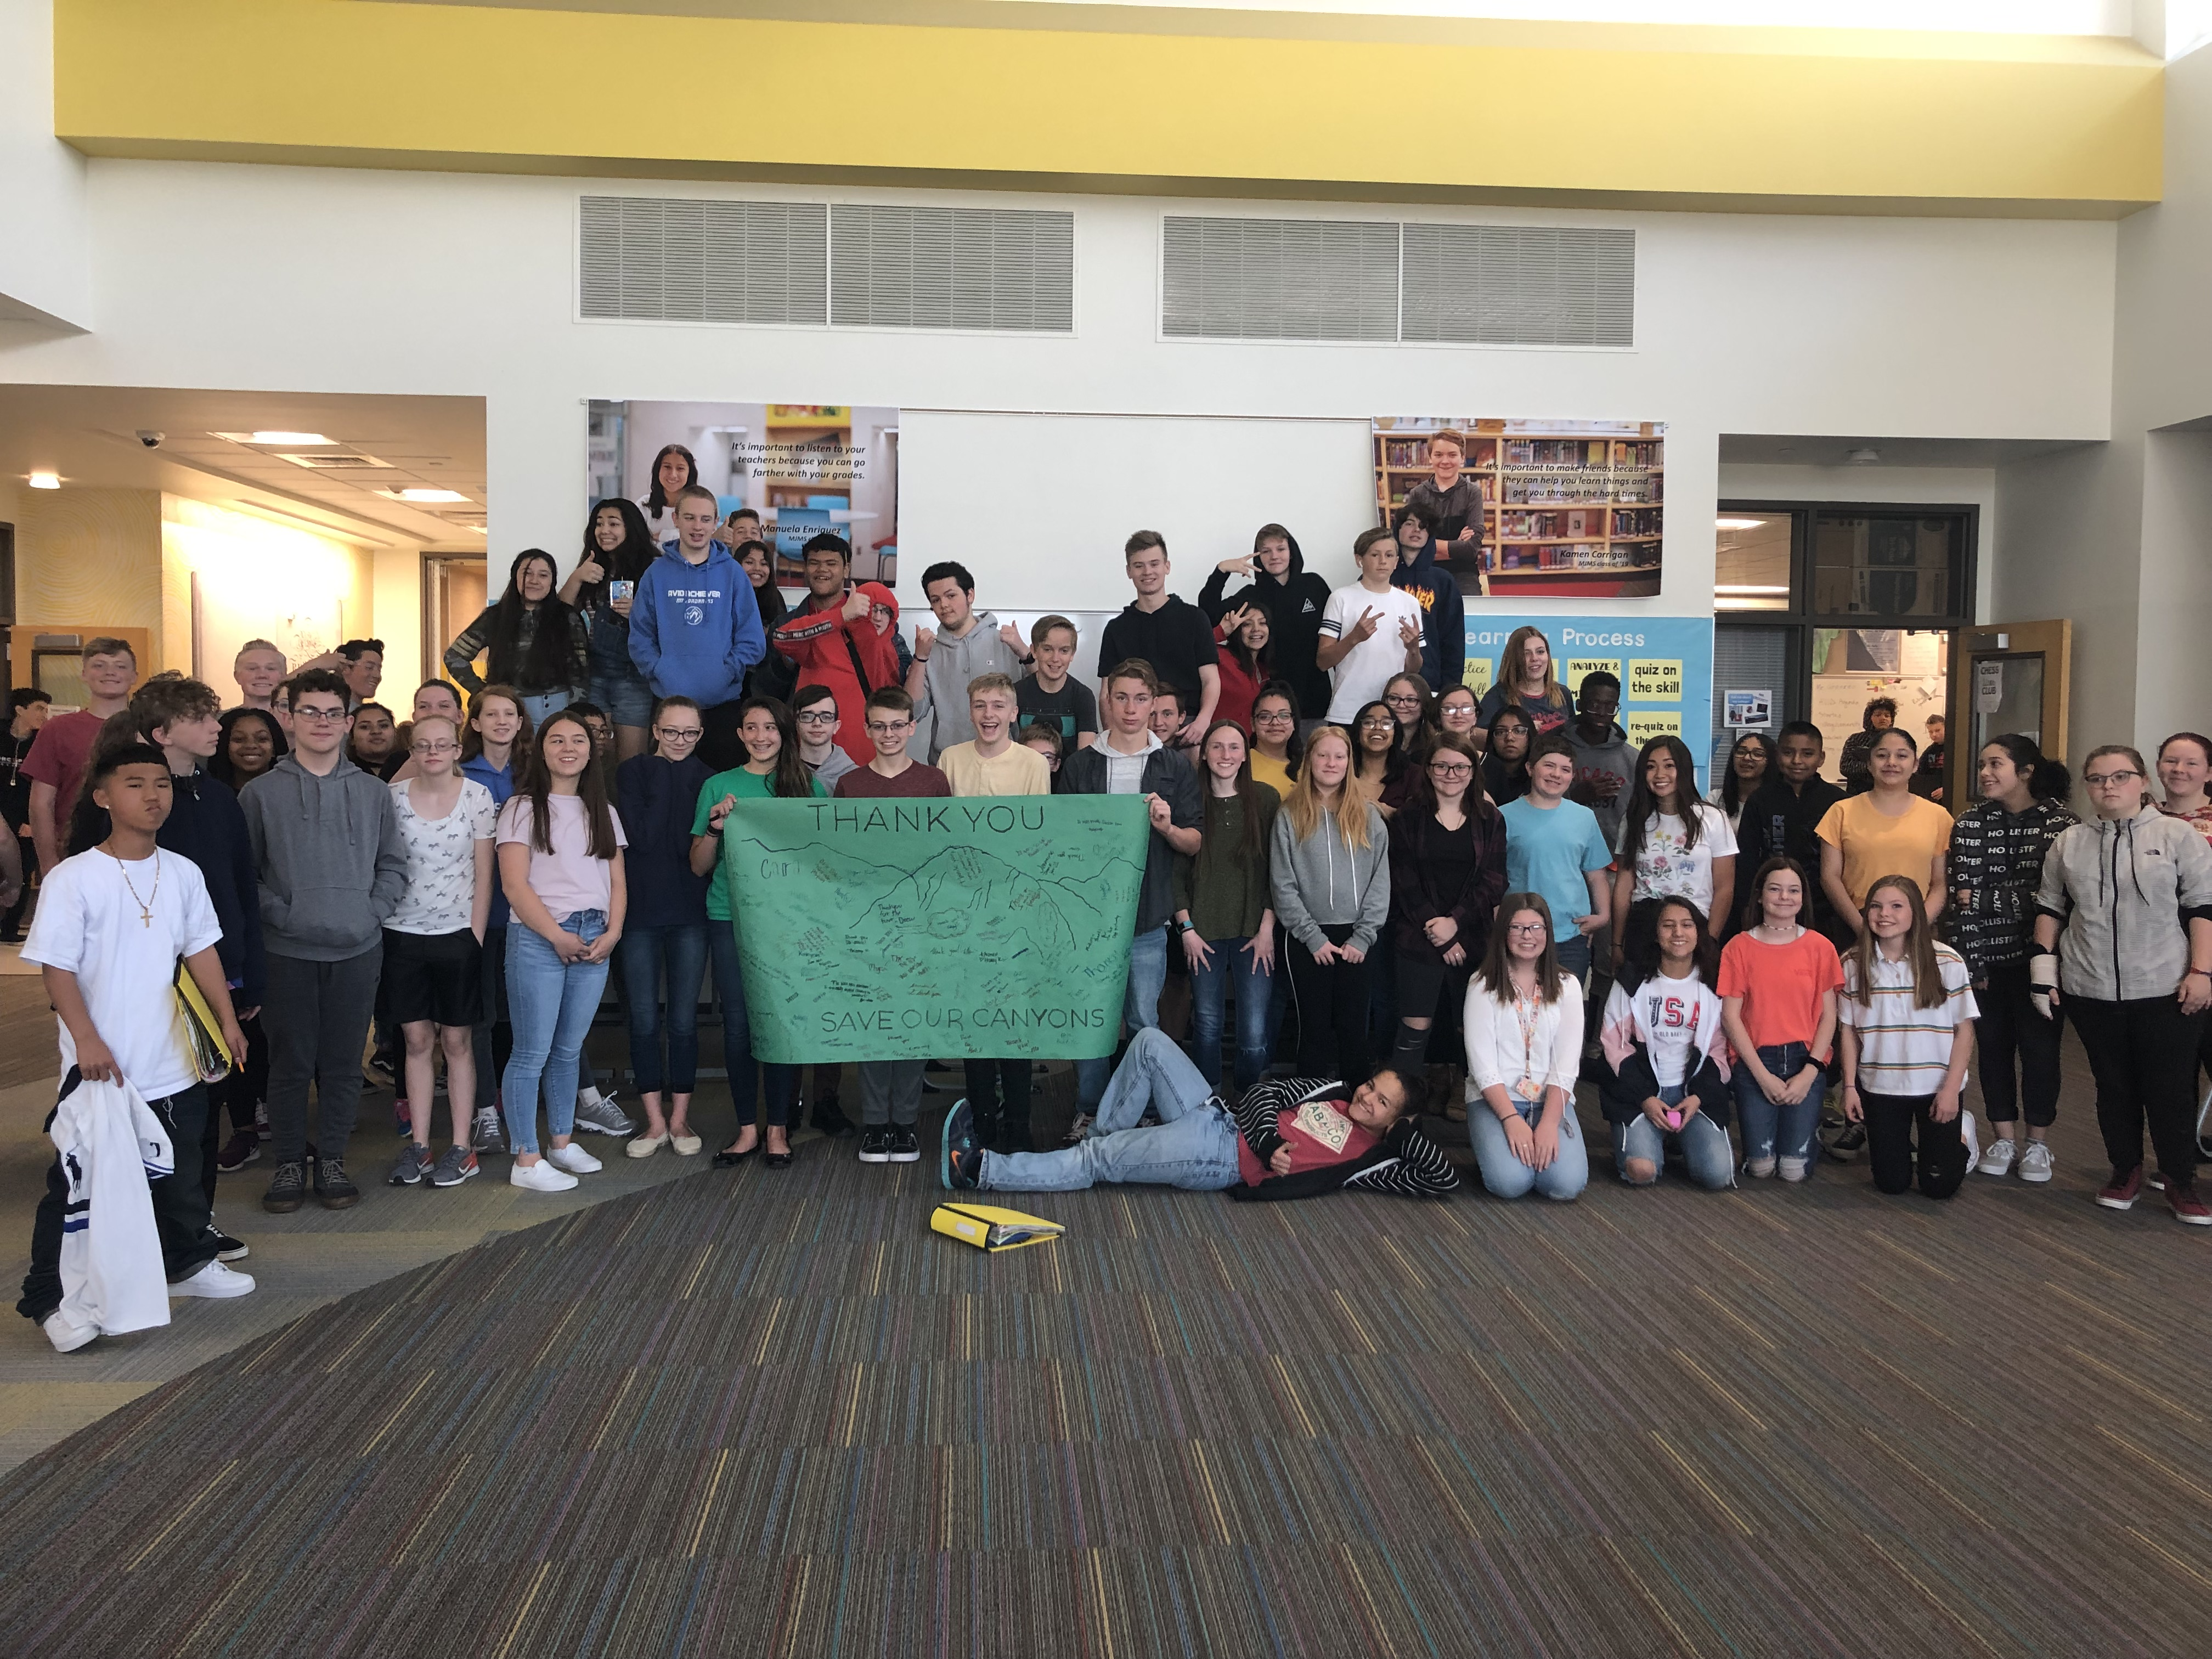 dipendente Mese Apparentemente  Save Our Canyons - SOCKids: Mount Jordan Middle School